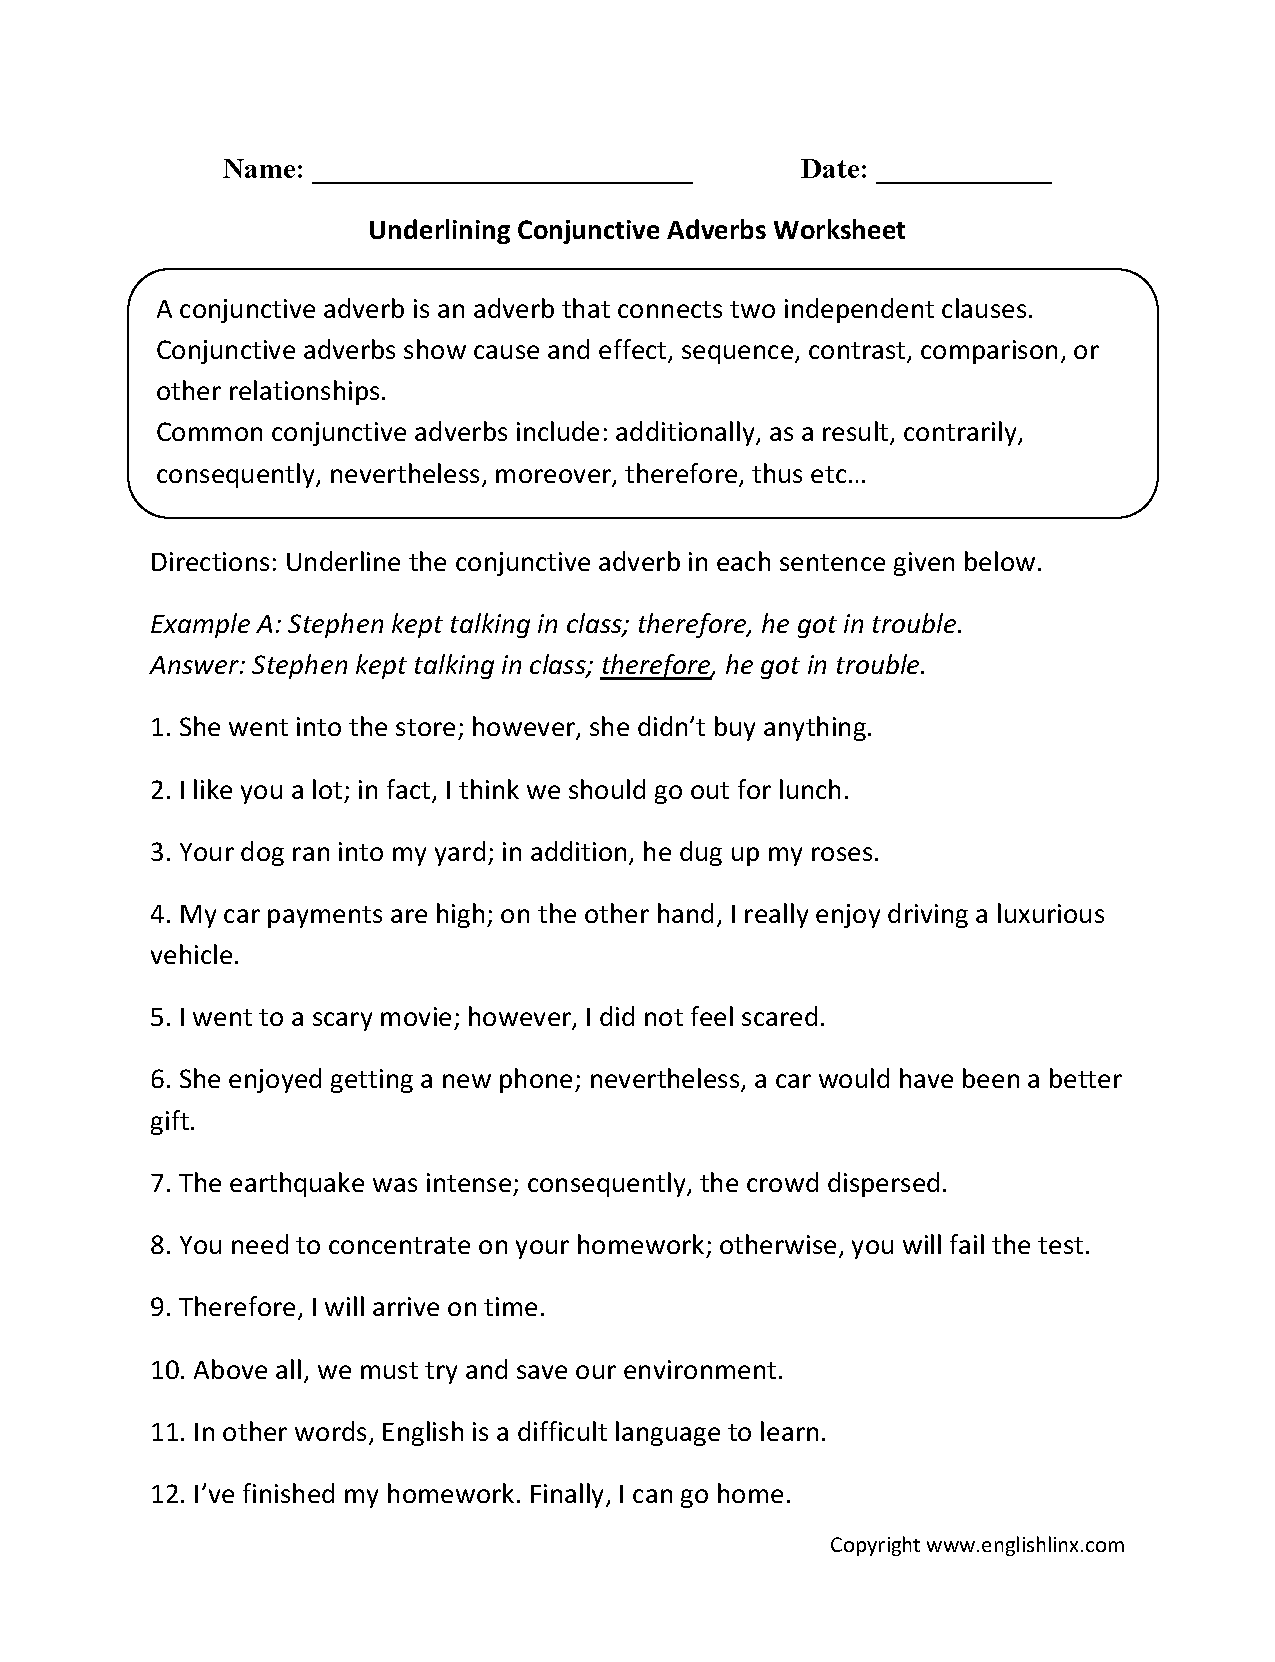 Proatmealus  Marvellous Englishlinxcom  Conjunctions Worksheets With Inspiring Worksheet With Delightful Supersize Me Worksheet Answers Also Cellular Respiration Worksheet Answer Key In Addition Hypothesis Worksheet And Making Connections Worksheet As Well As Math Multiplication Worksheet Additionally Area Of Shaded Region Worksheet From Englishlinxcom With Proatmealus  Inspiring Englishlinxcom  Conjunctions Worksheets With Delightful Worksheet And Marvellous Supersize Me Worksheet Answers Also Cellular Respiration Worksheet Answer Key In Addition Hypothesis Worksheet From Englishlinxcom